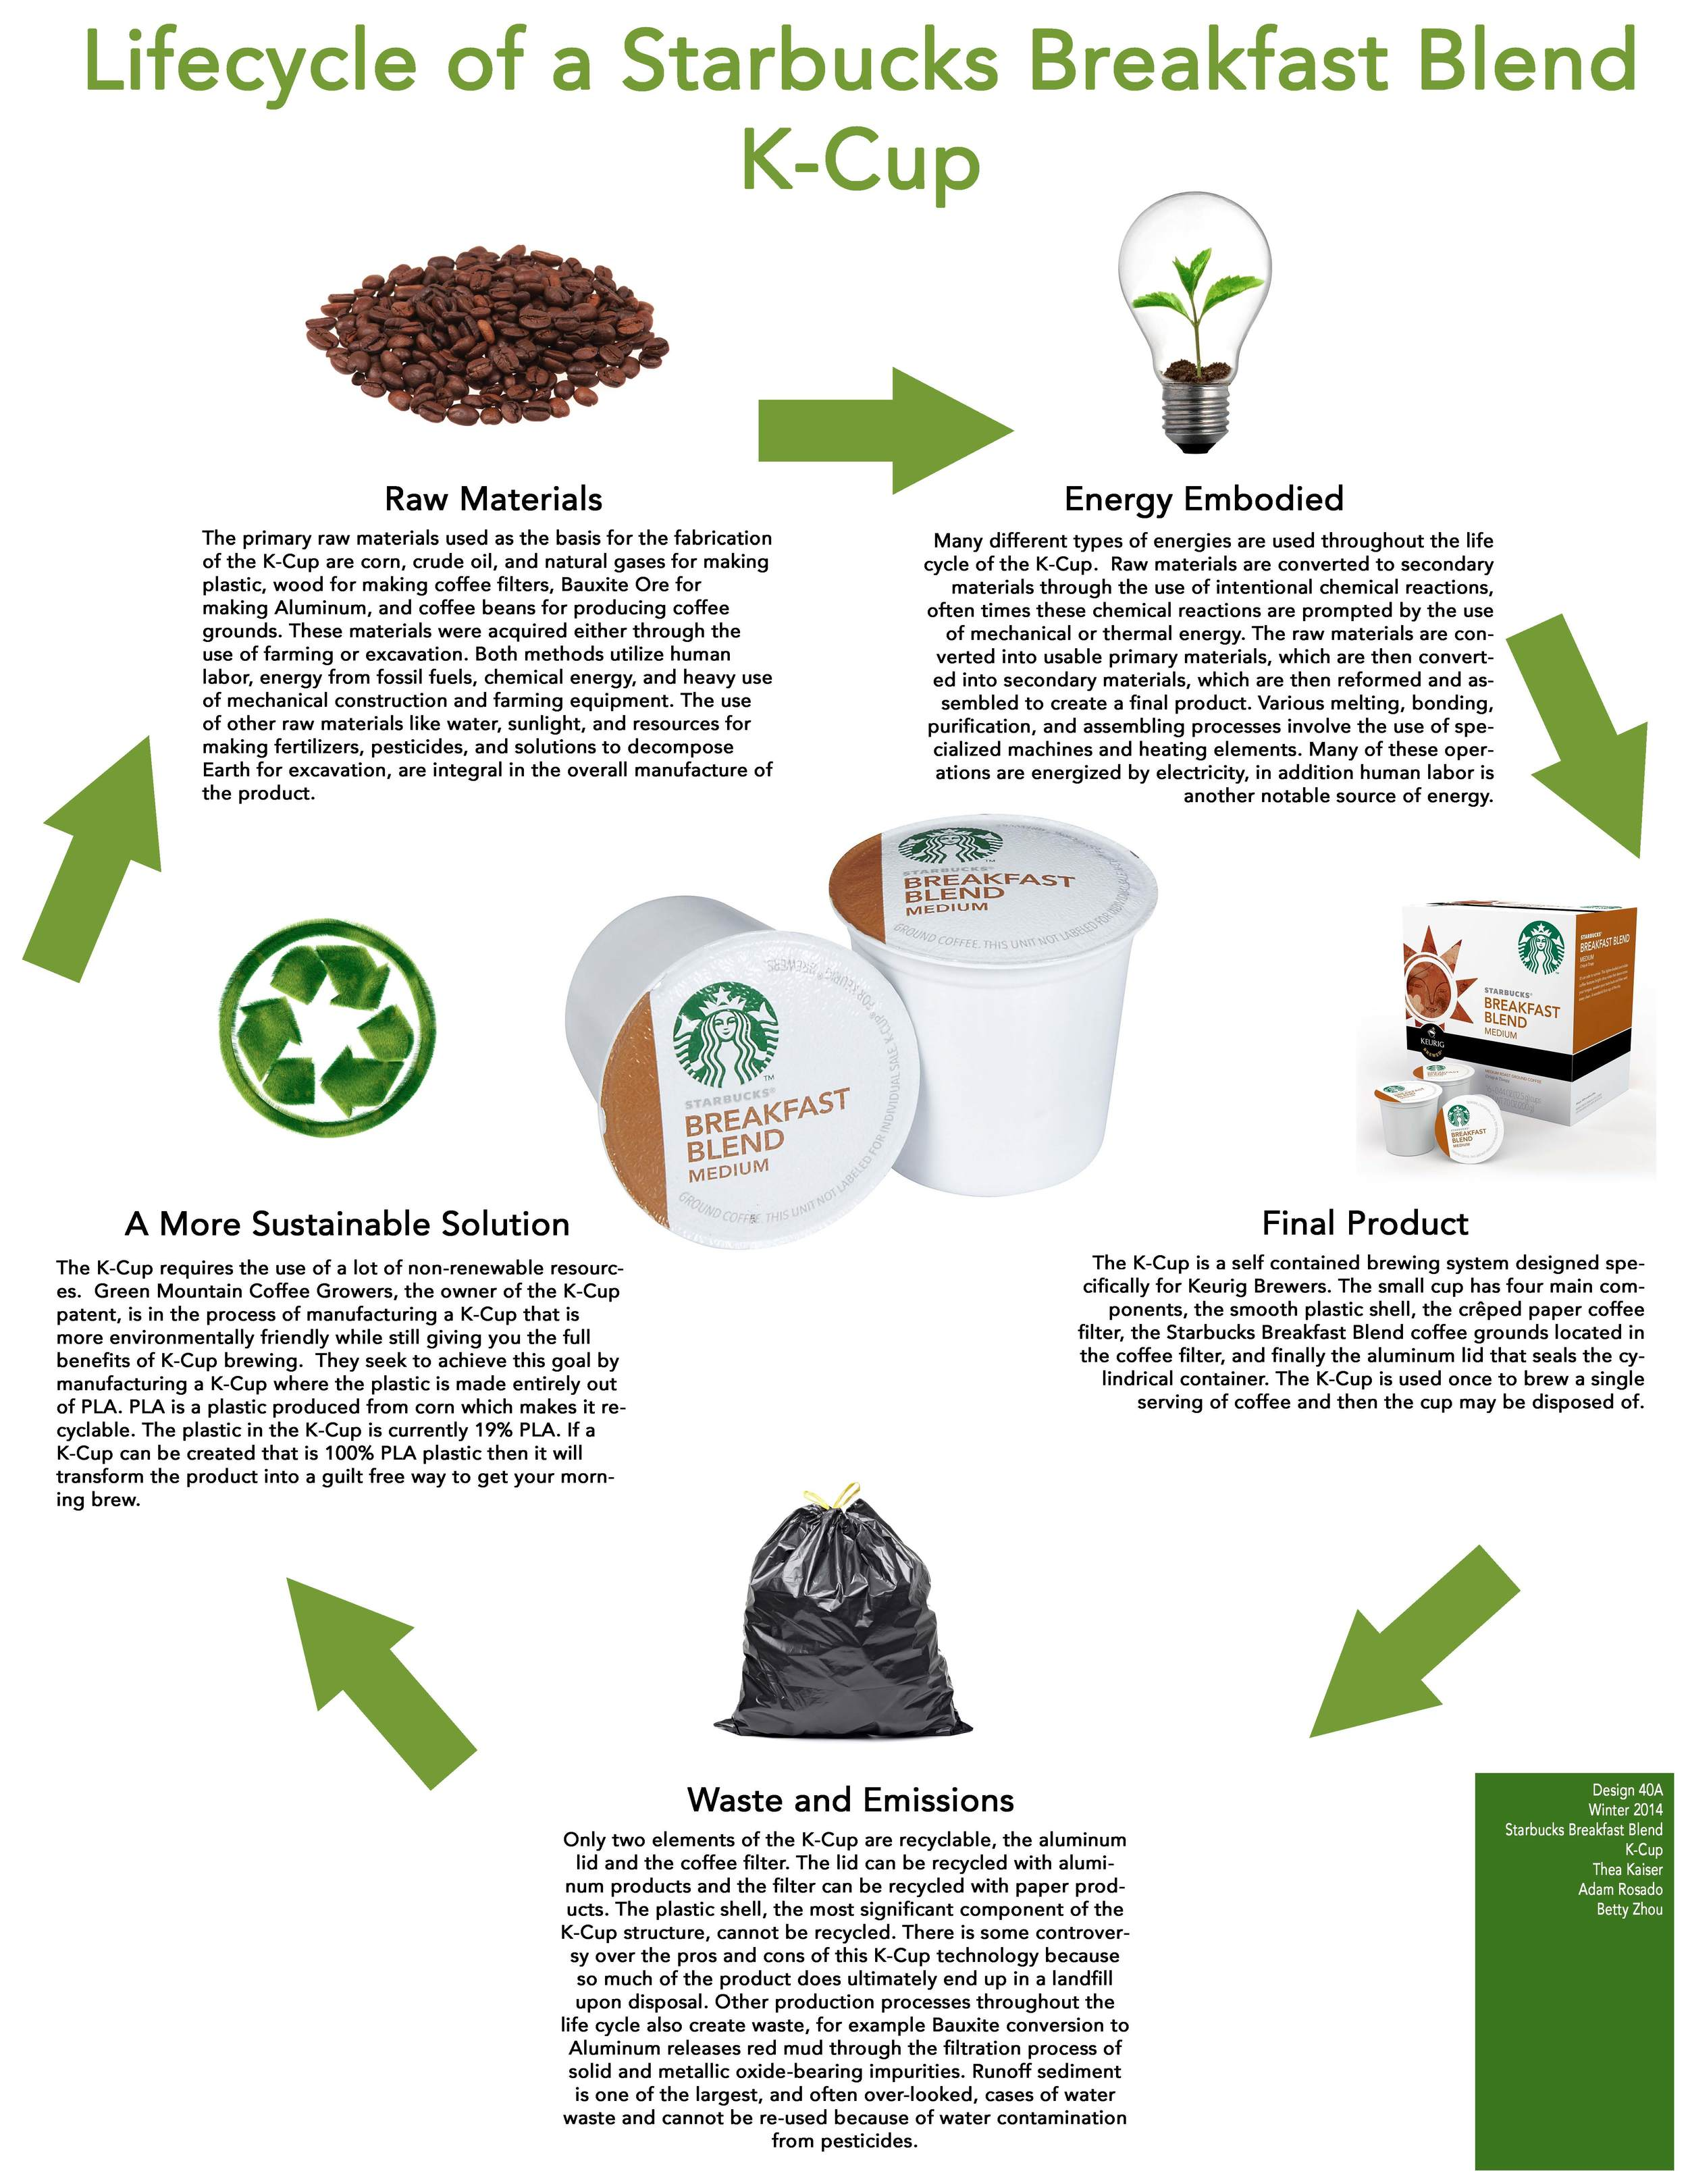 Starbucks Breakfast Blend K Cup Design Life Cycle